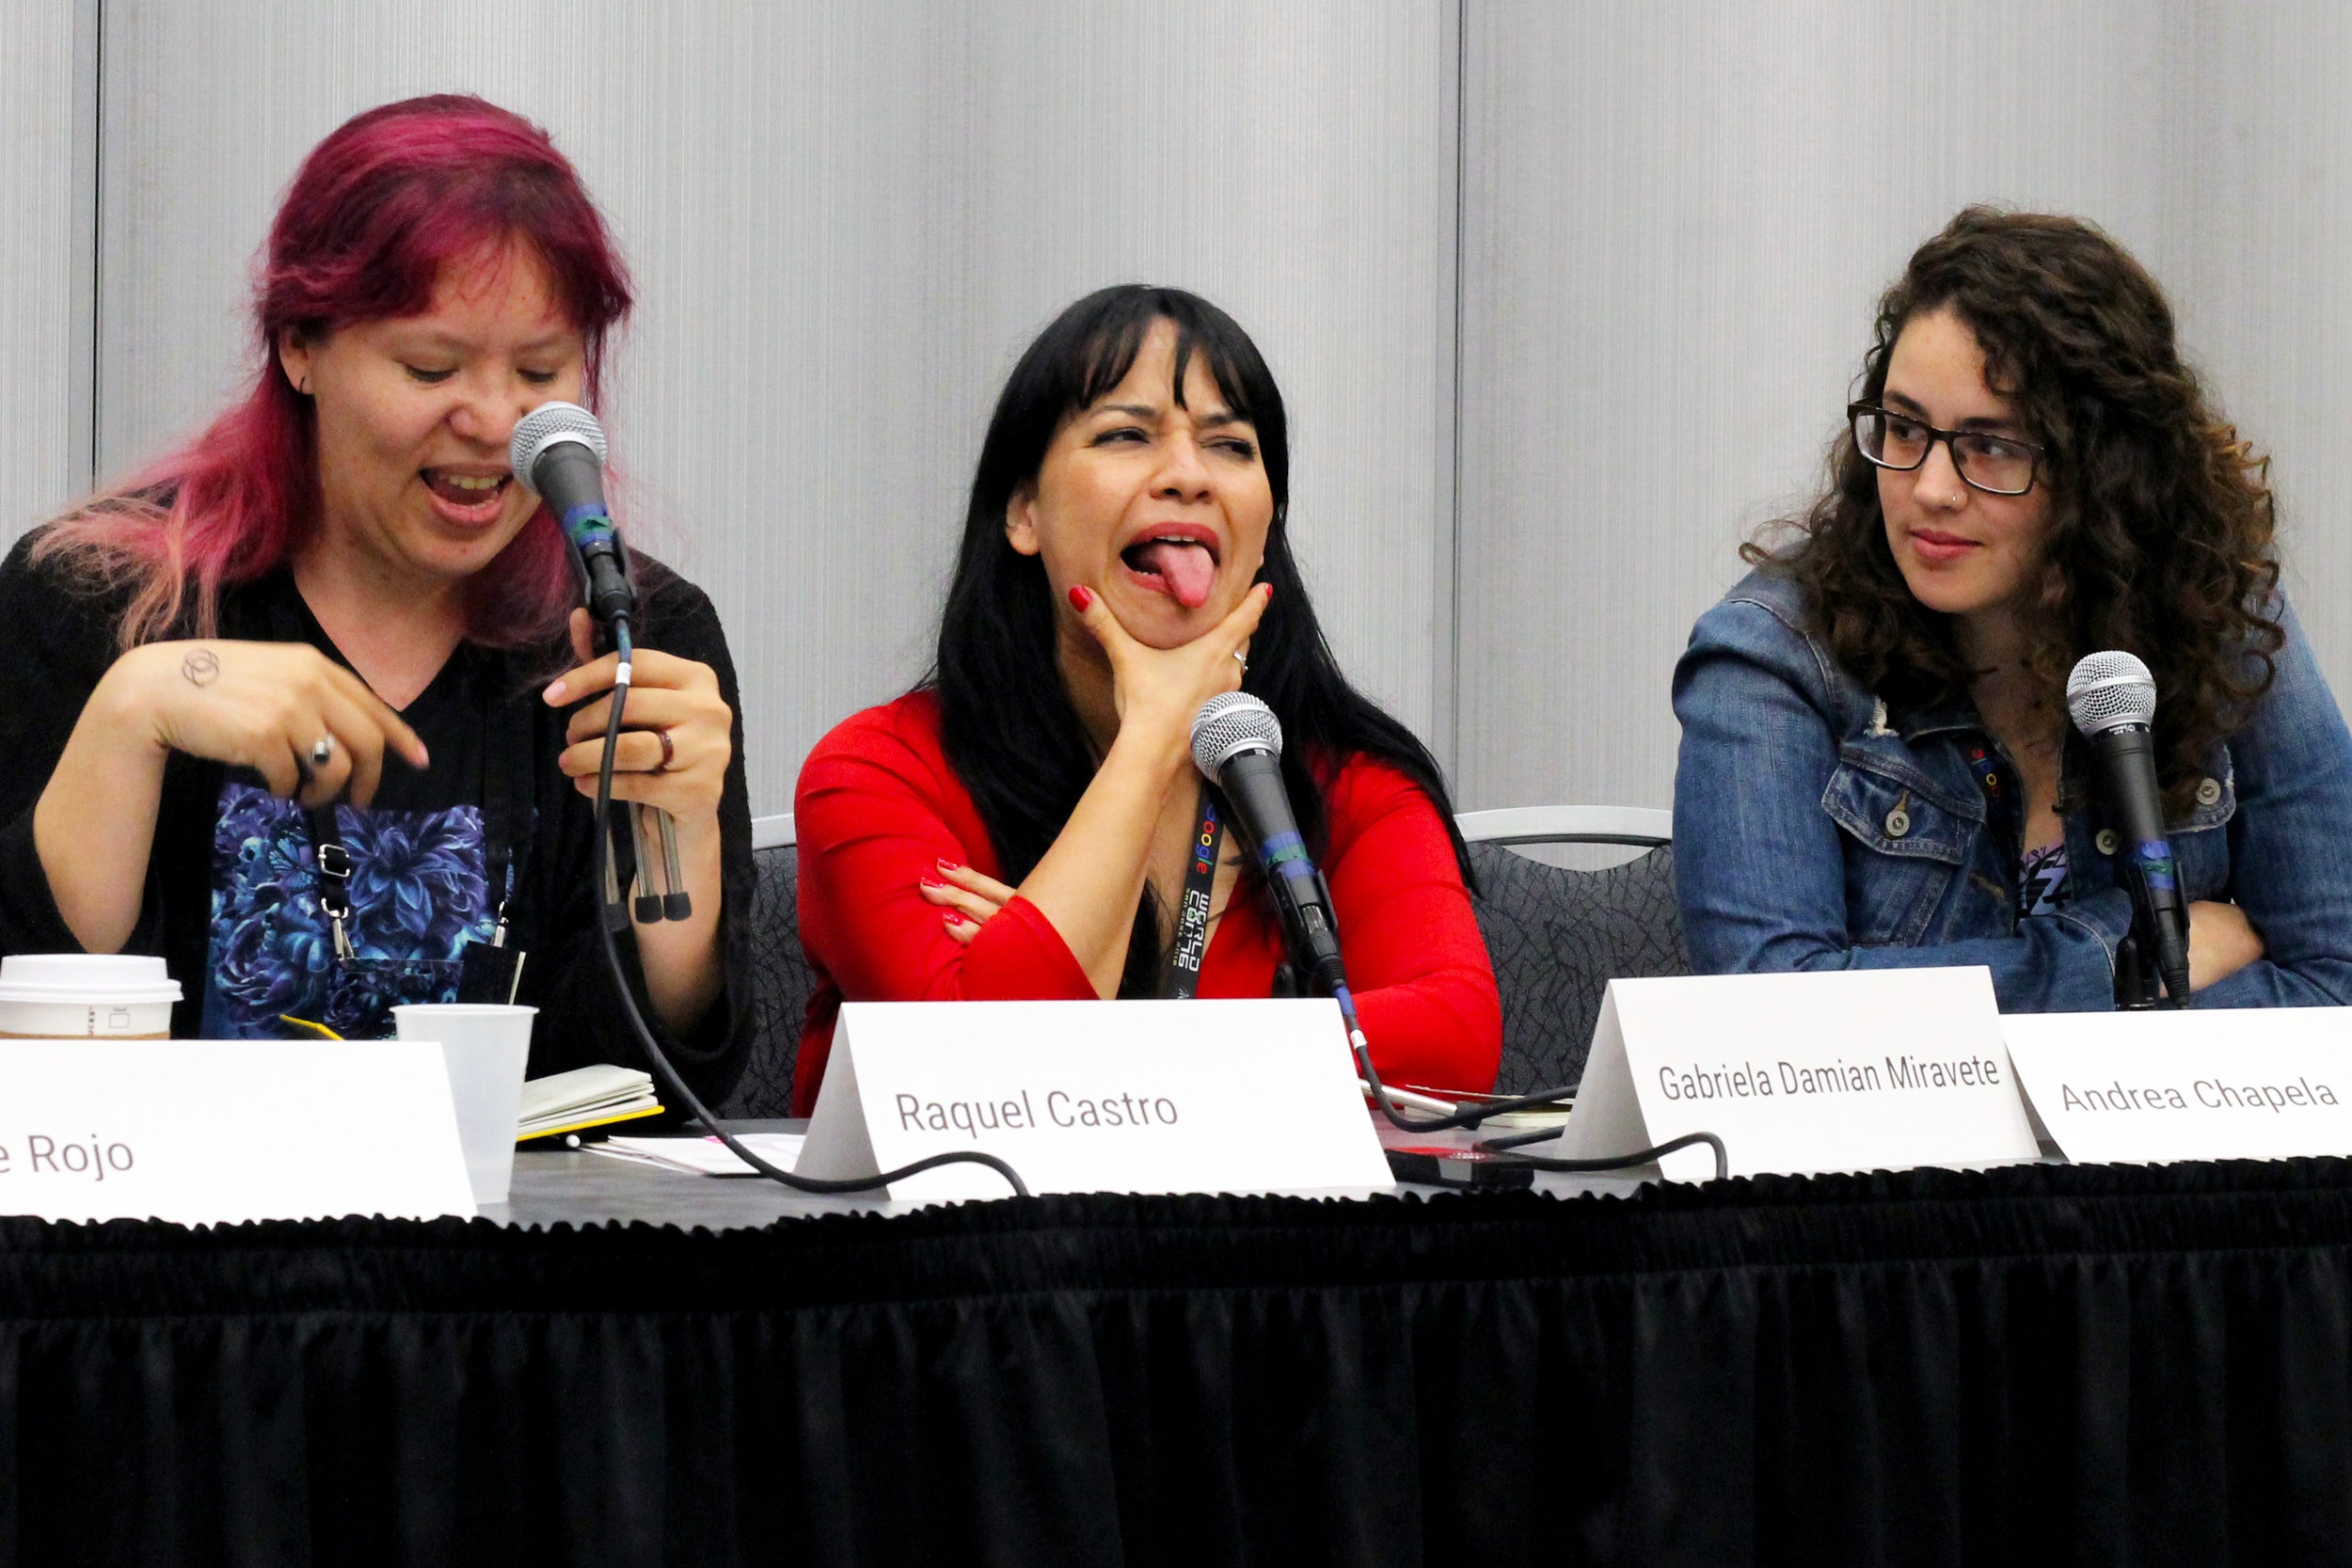 Raquel Castro, Gabriela Damián, and Andrea Chapela on the Mexican Female Horror Writers panel (Sent by Julia Rios; photo by Kateryna Barnes)